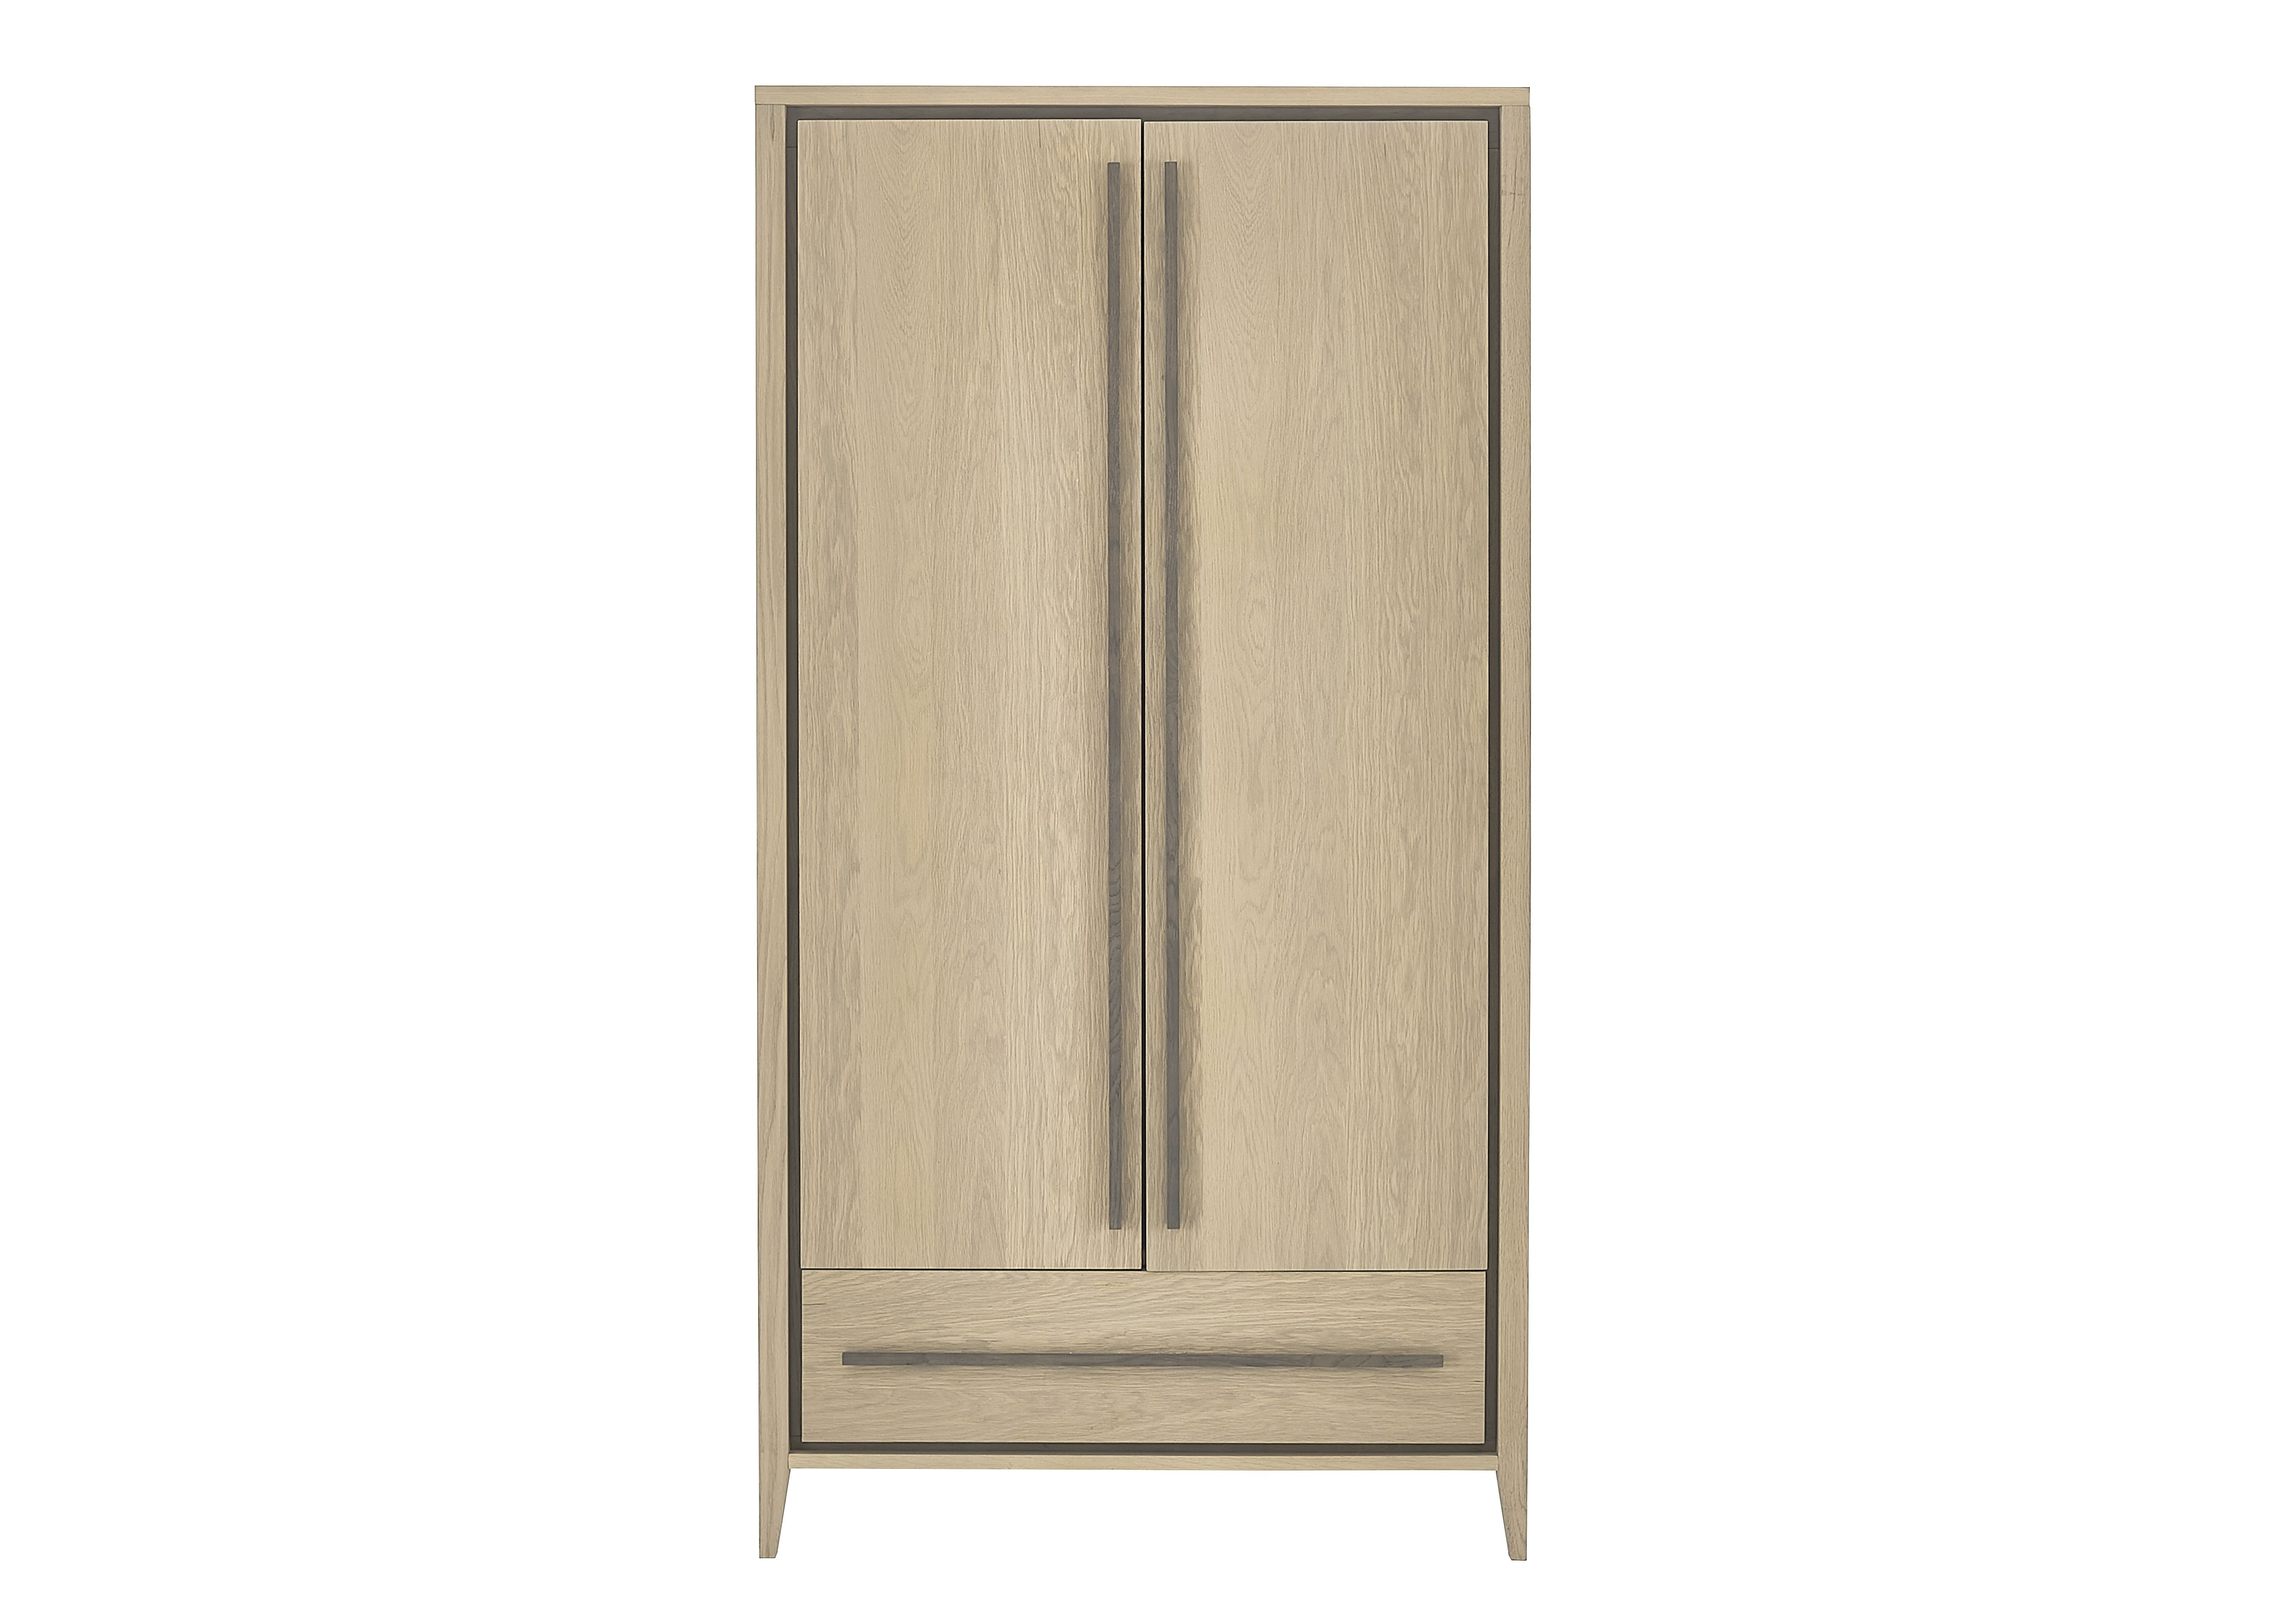 Preferred Wardrobes For Sale Aberdeen Cheap In Bournemouth Double Bristol In Cheap Double Wardrobes (View 12 of 15)